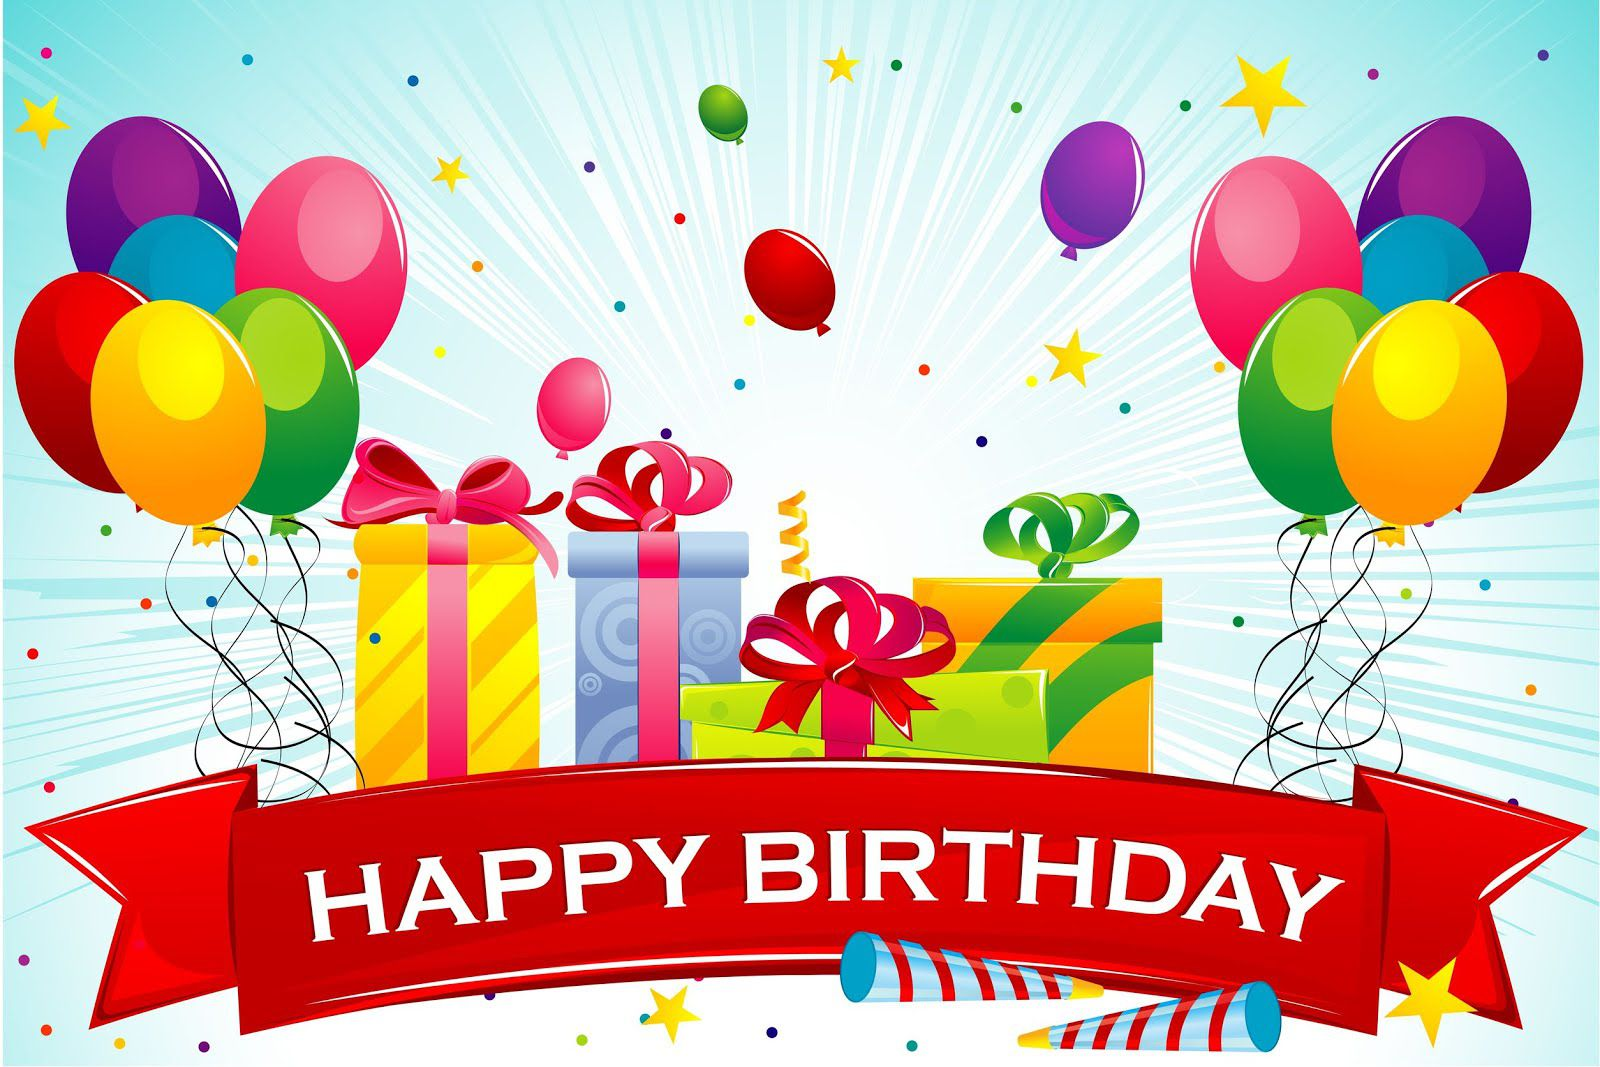 birthday banner images ; Gift-And-Wishes-Happy-Birthday-Banner